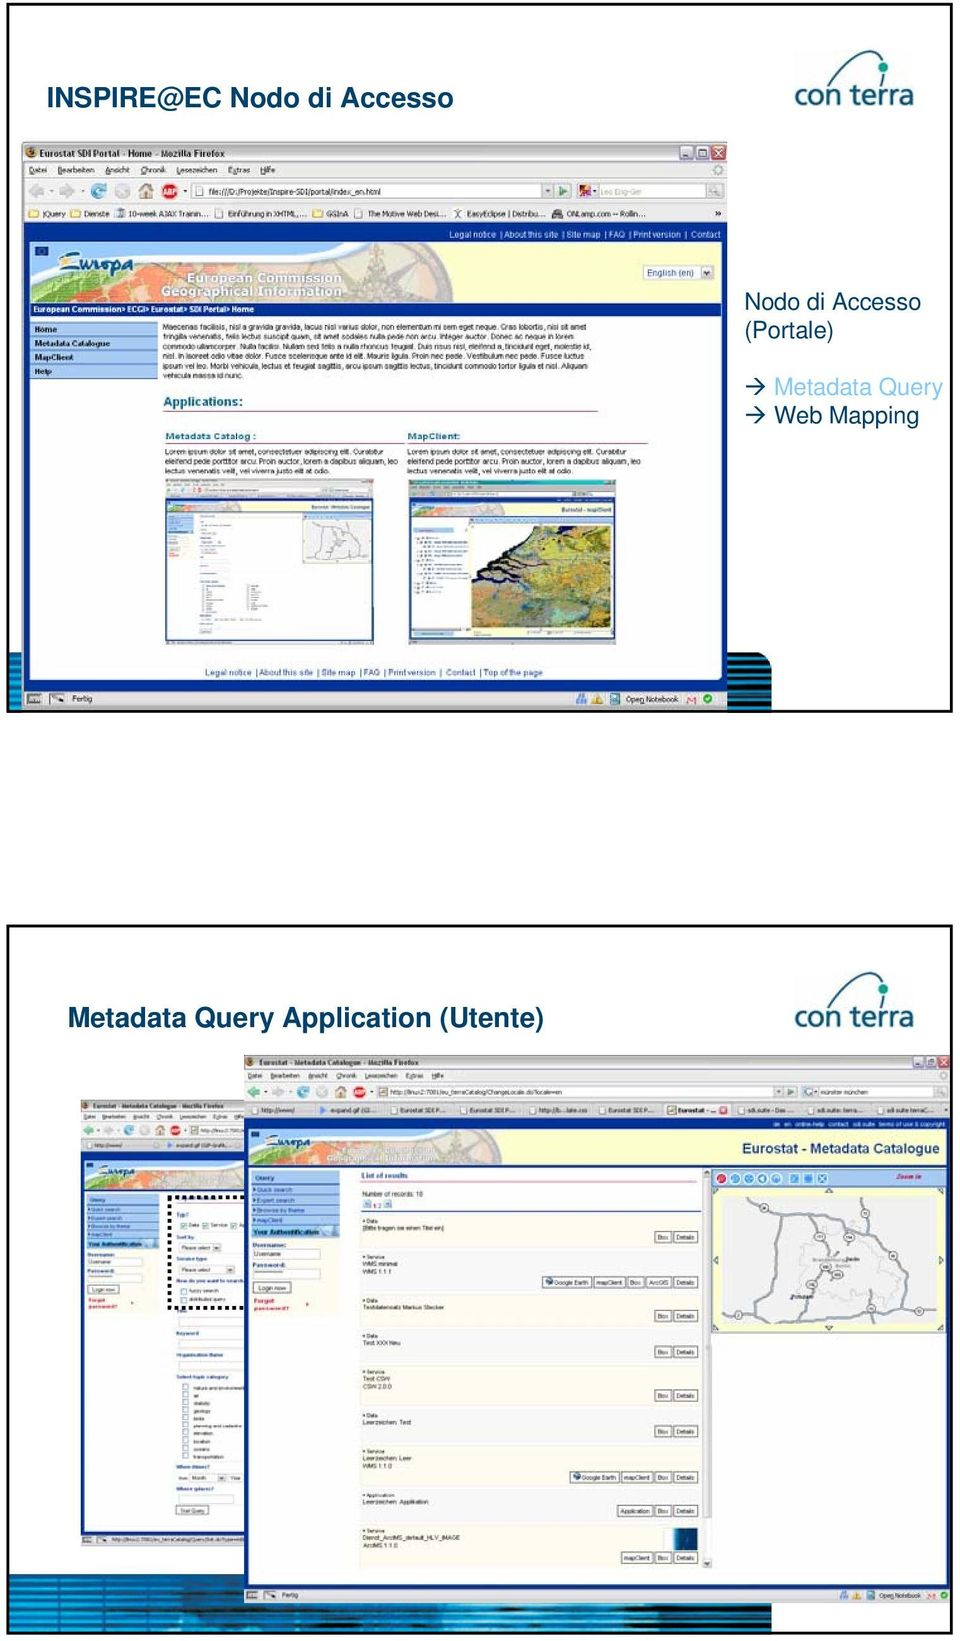 Metadata Query Web Mapping